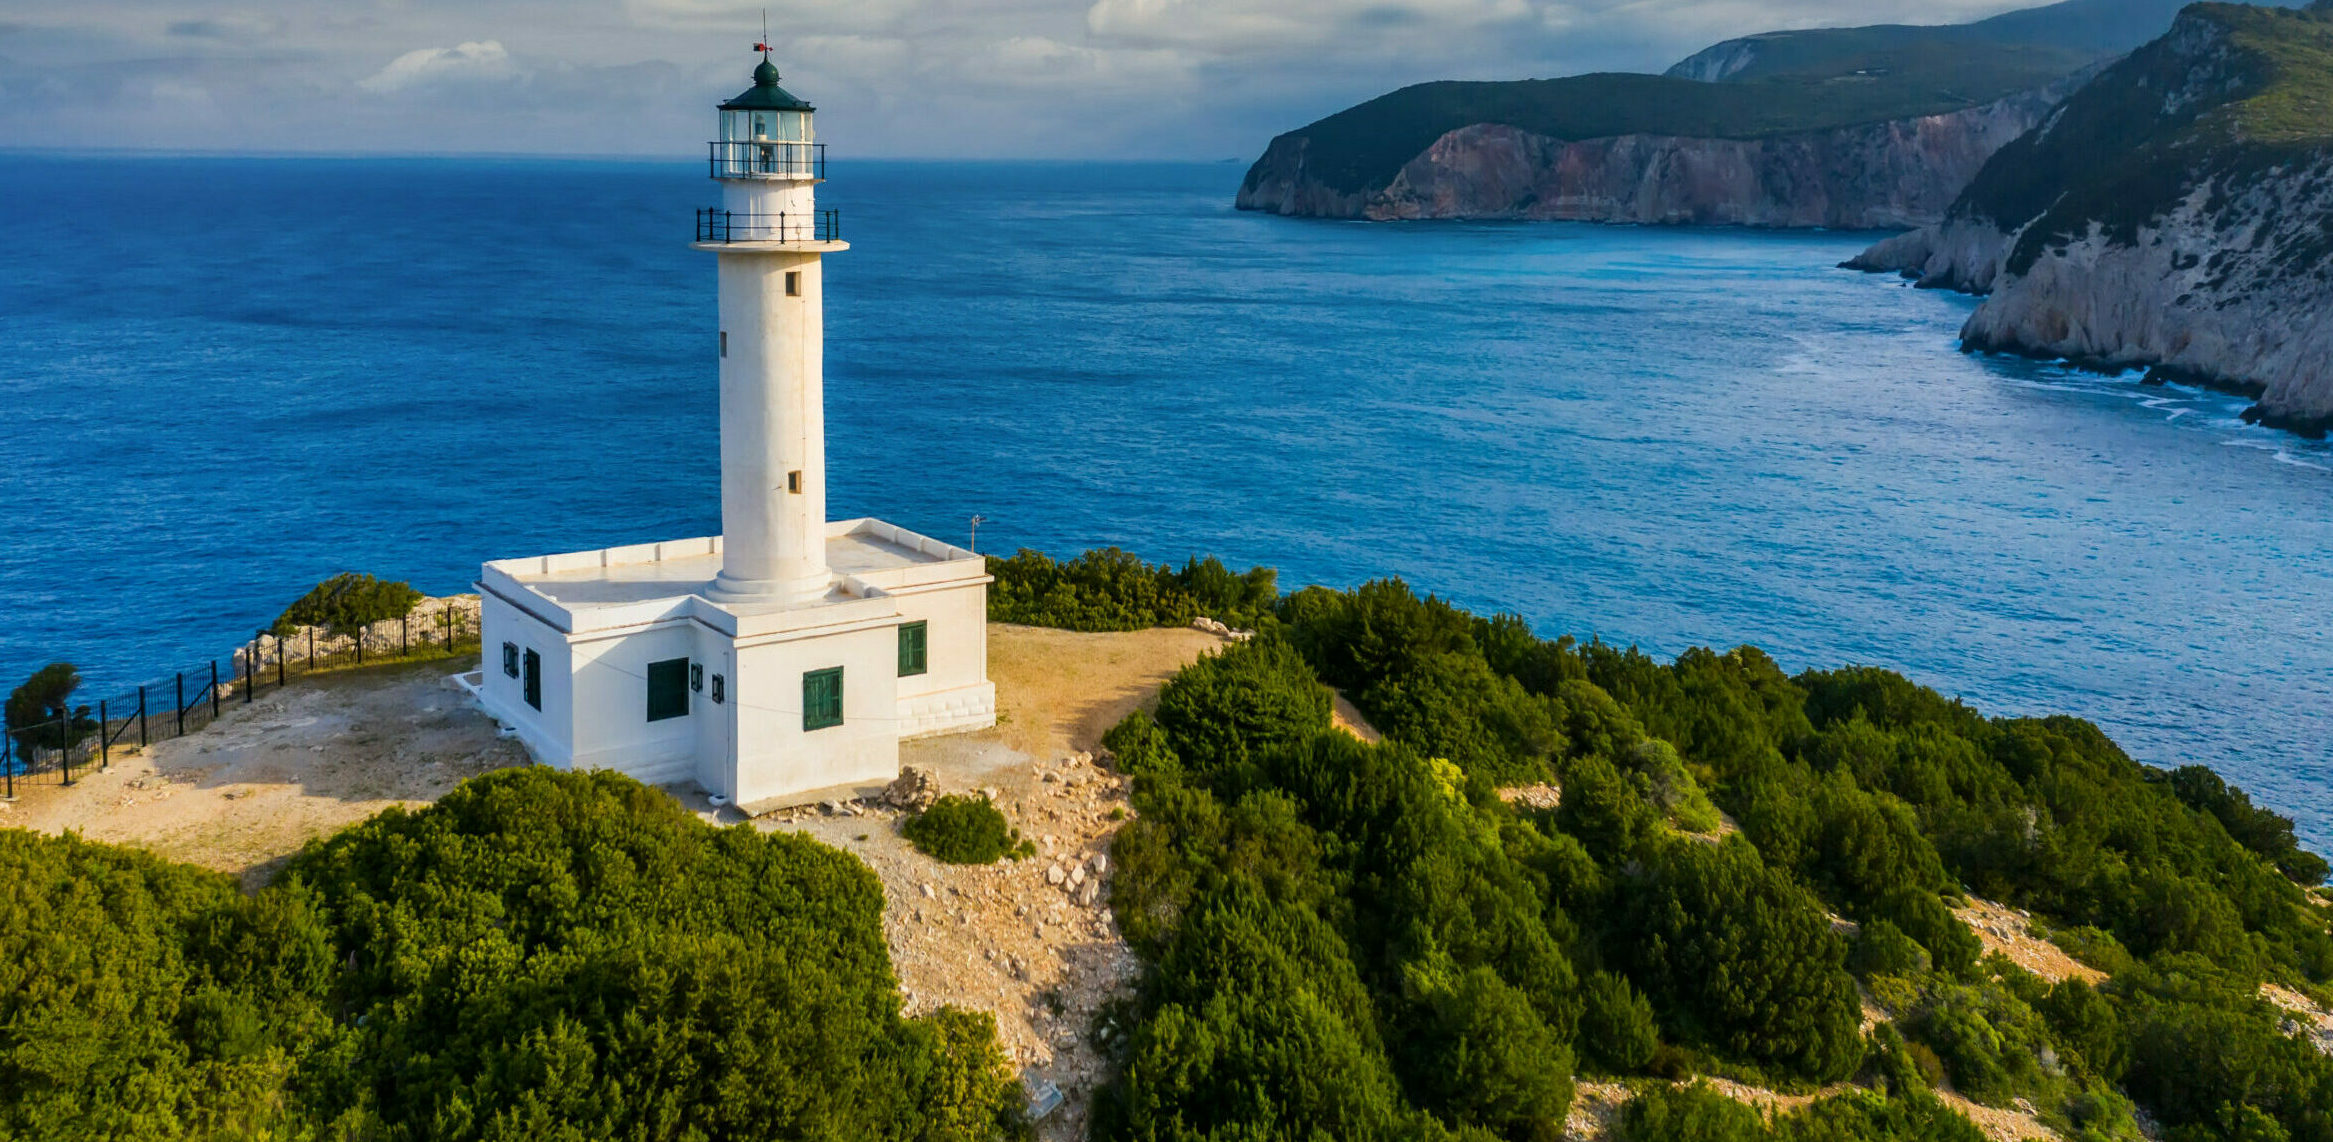 The impressive lighthouses of Greece and their history